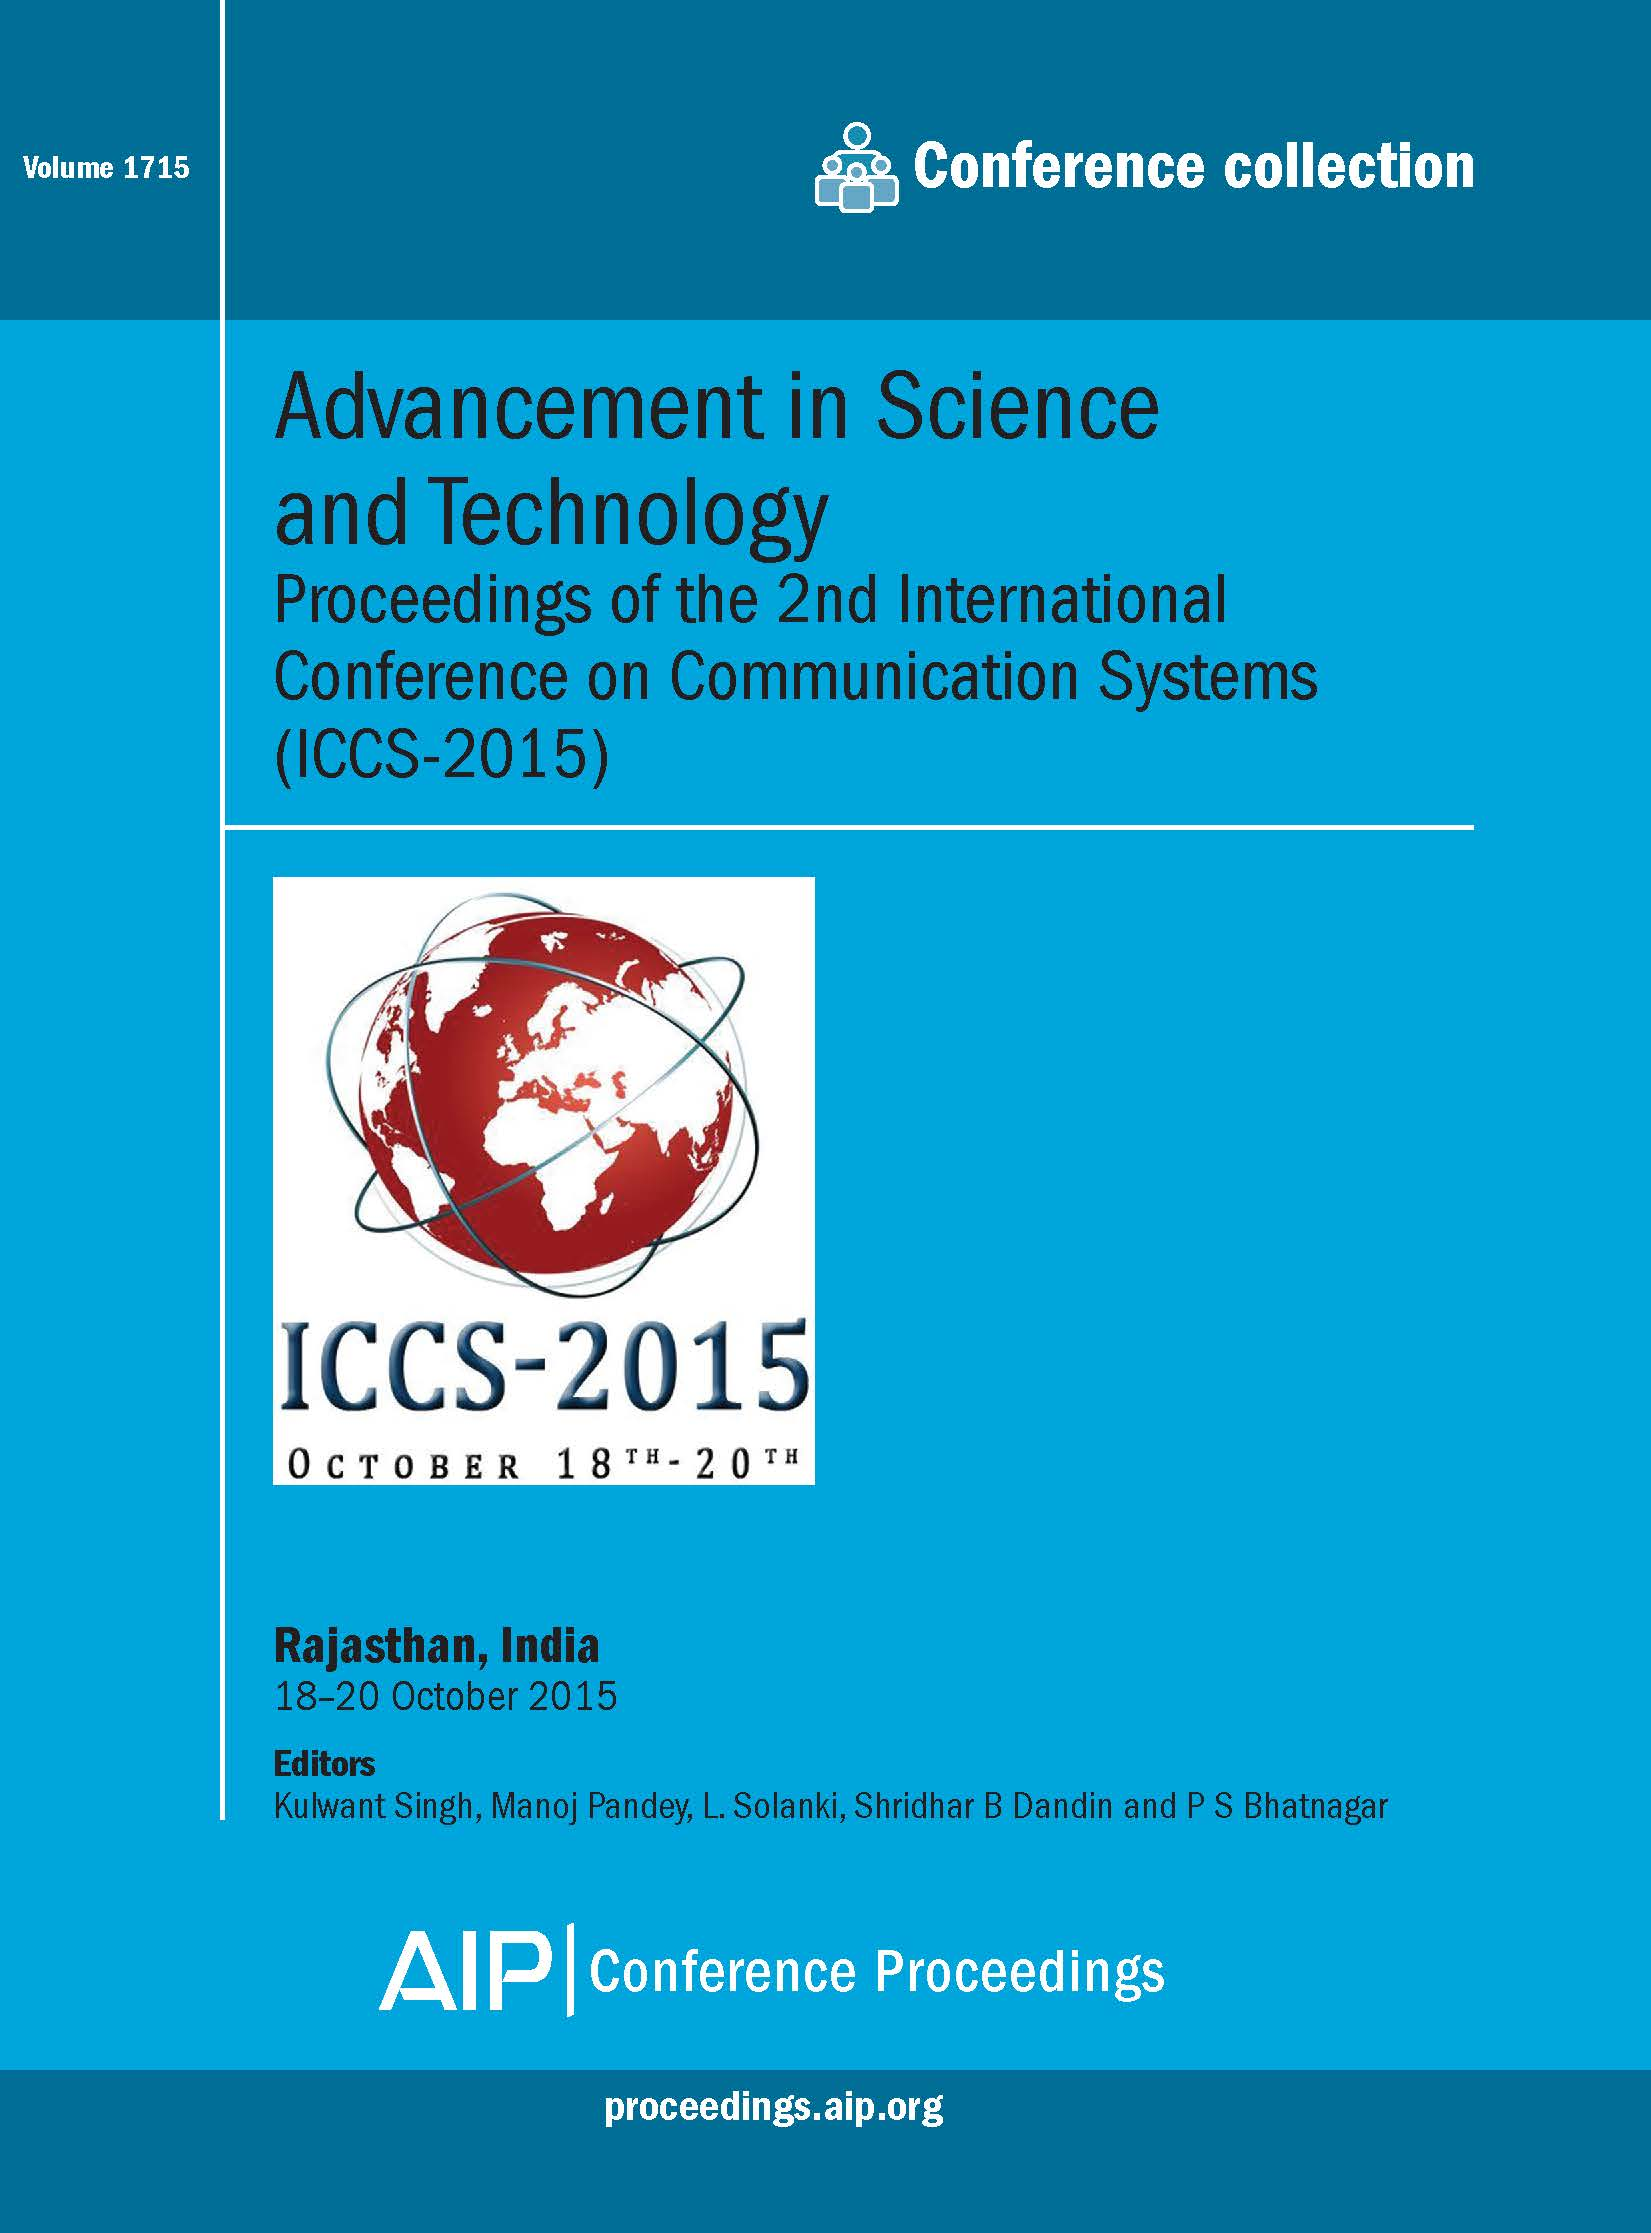 Volume 1715: Advancement in Science and Technology | AIP